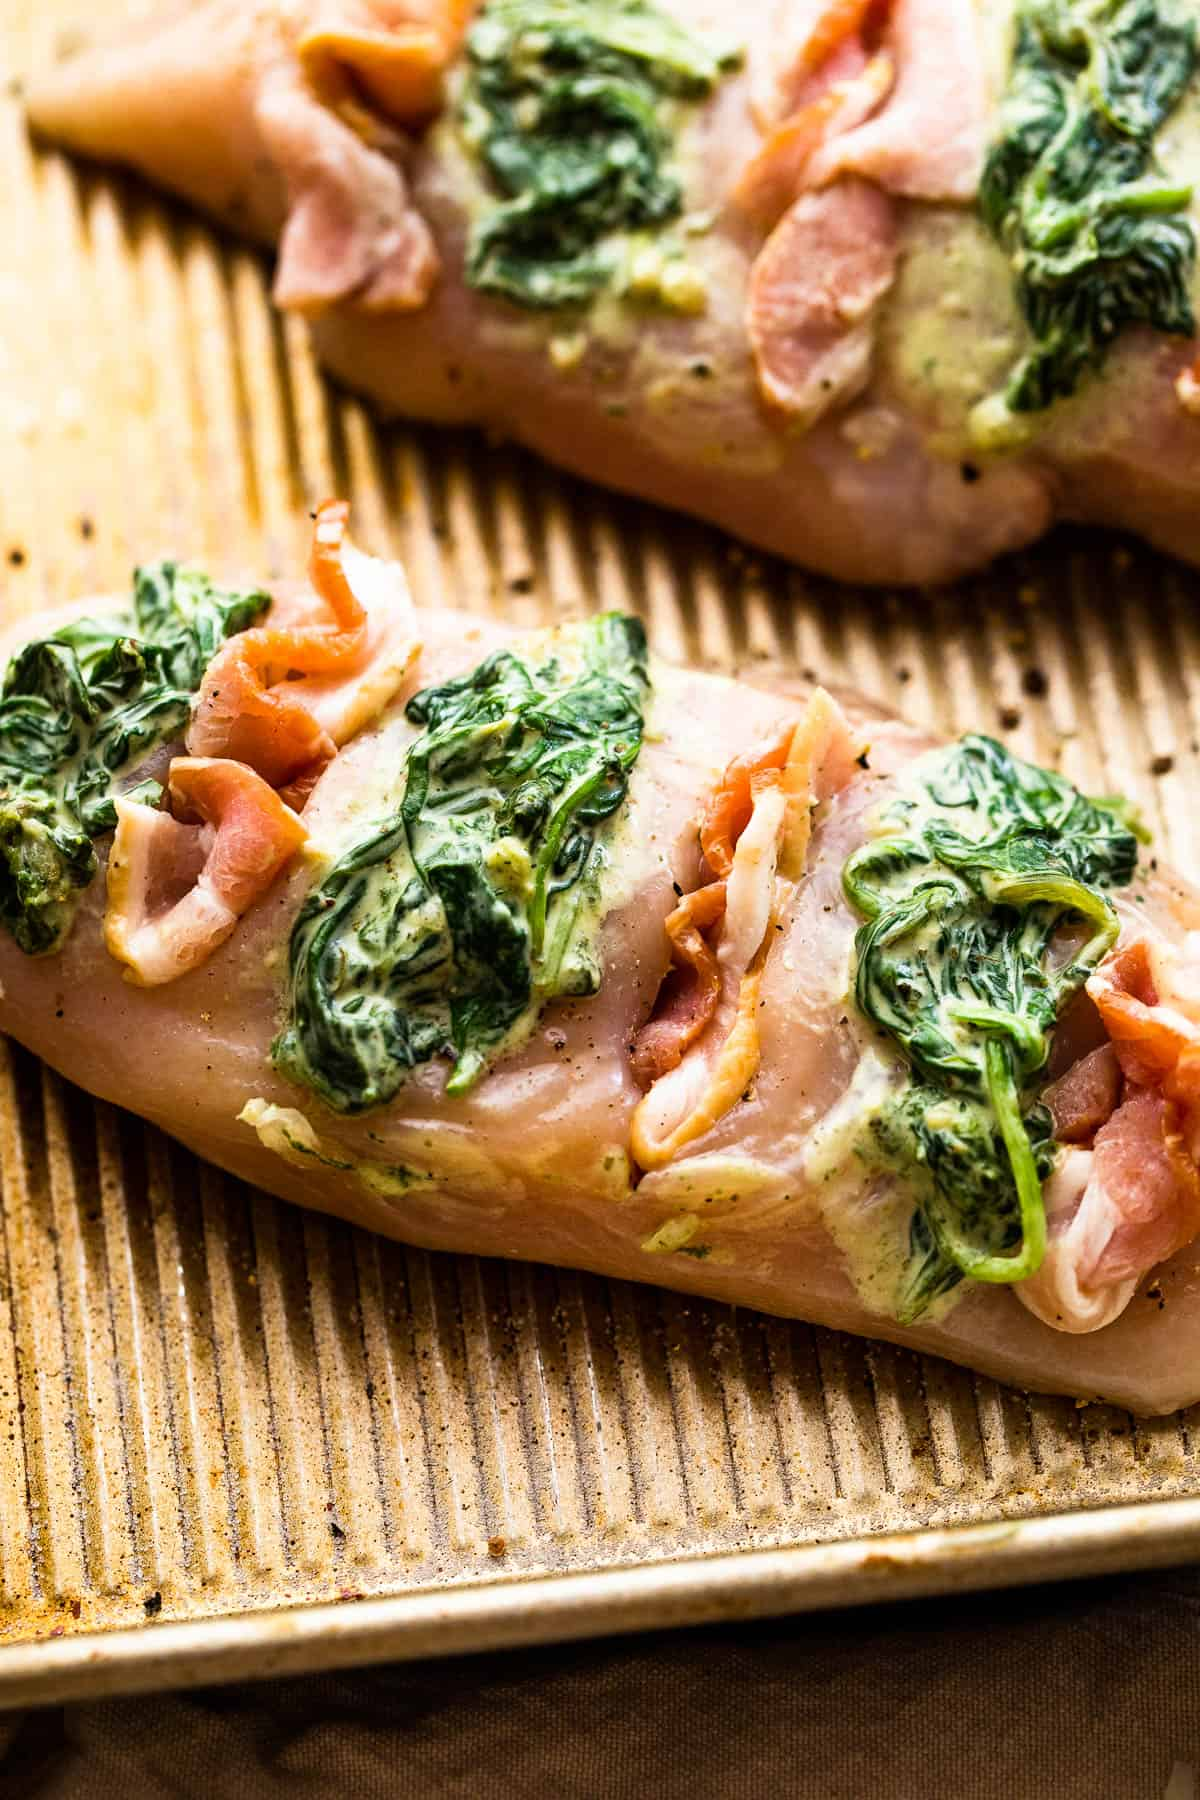 raw chicken breasts cut hasselback style and stuffed with creamed spinach plus bacon